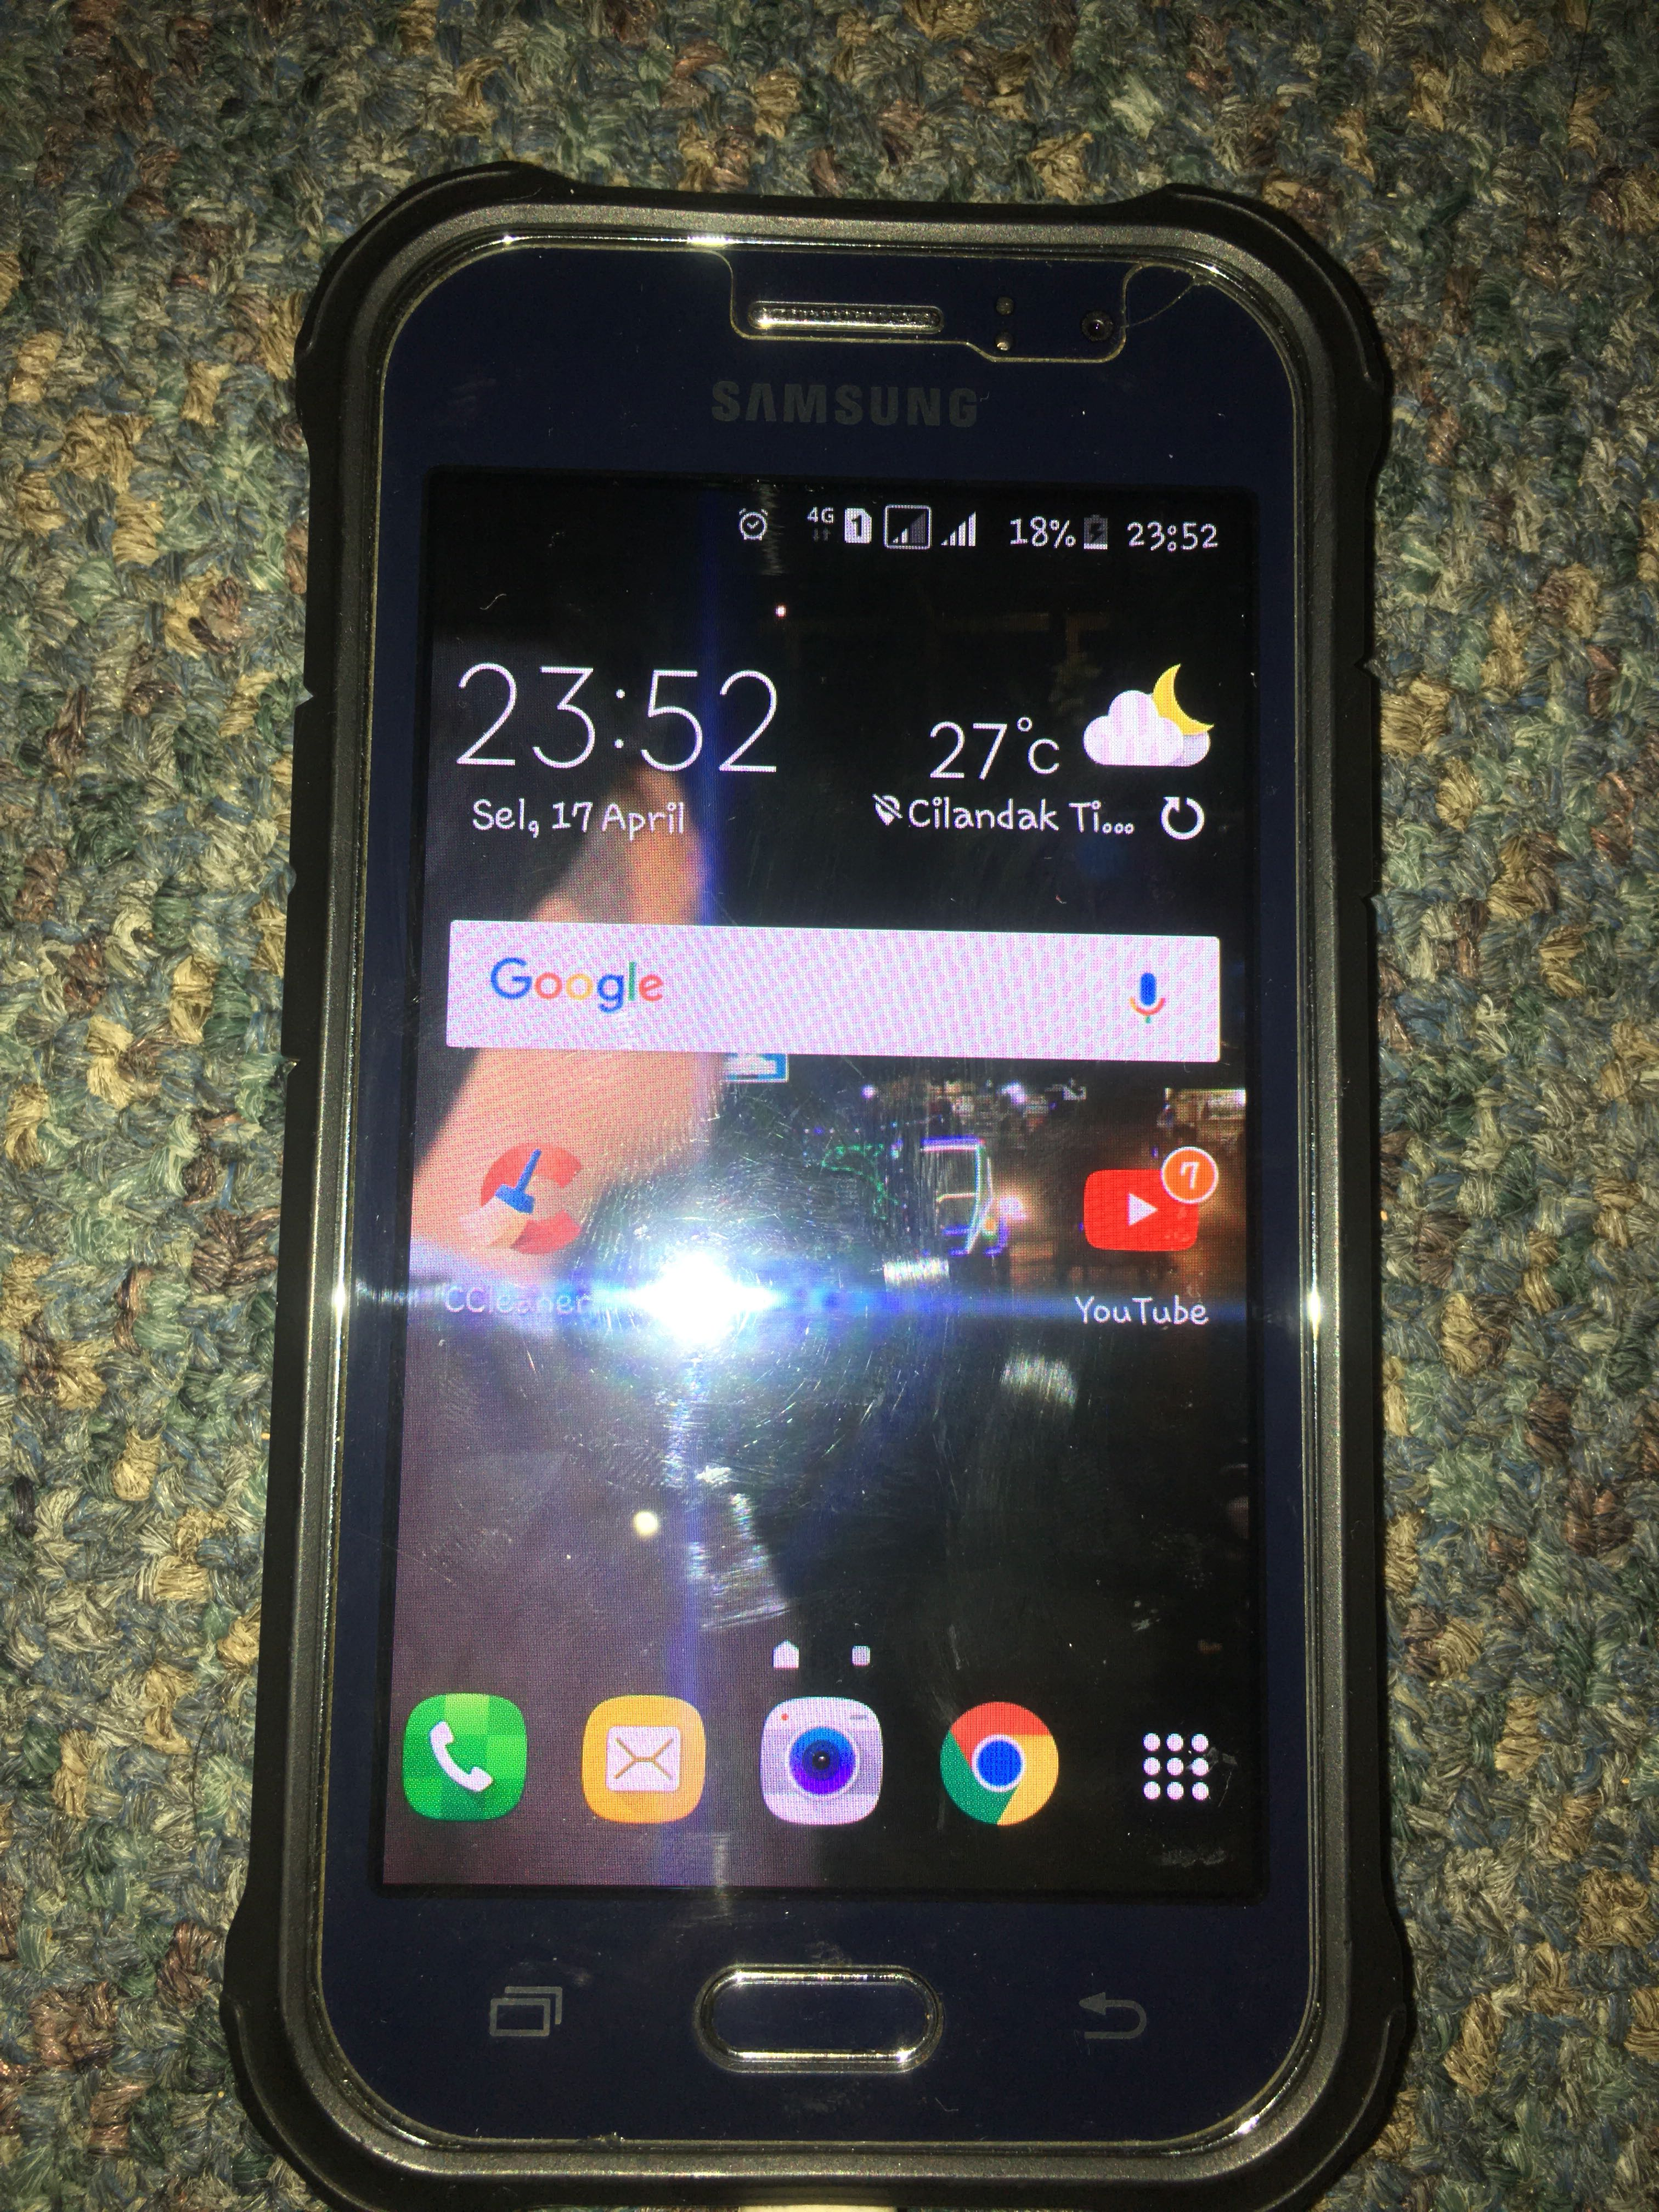 Samsung Galaxy J1 Ace 2016 8Gb MicroSD 8gb Mobile Phones Tablets Android On Carousell